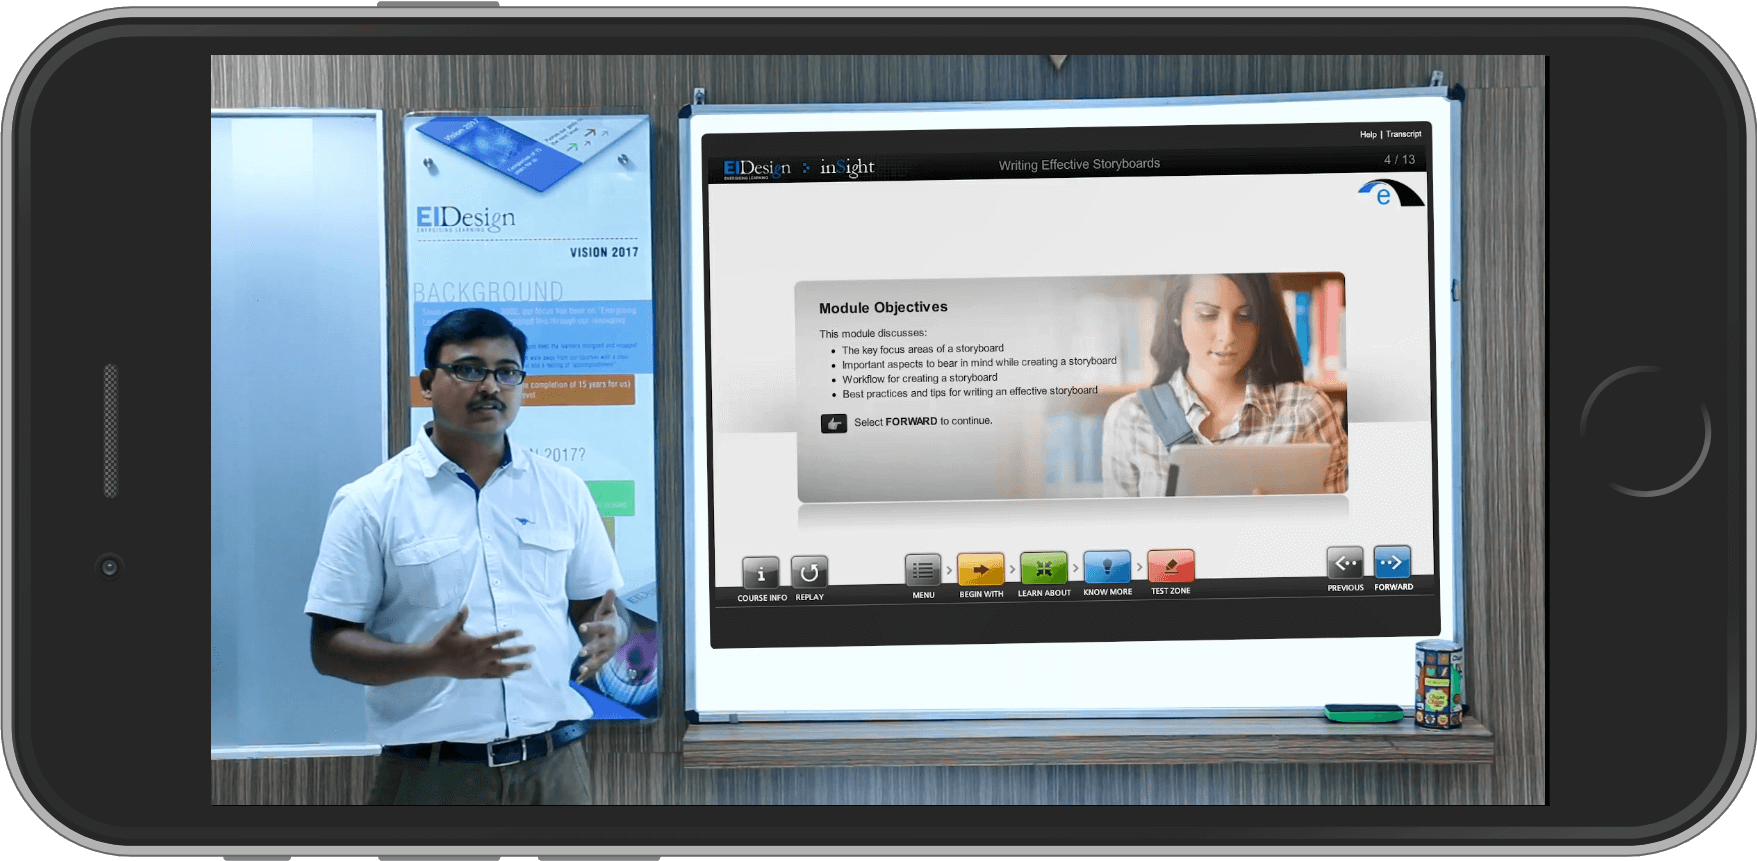 microlearning - webcast